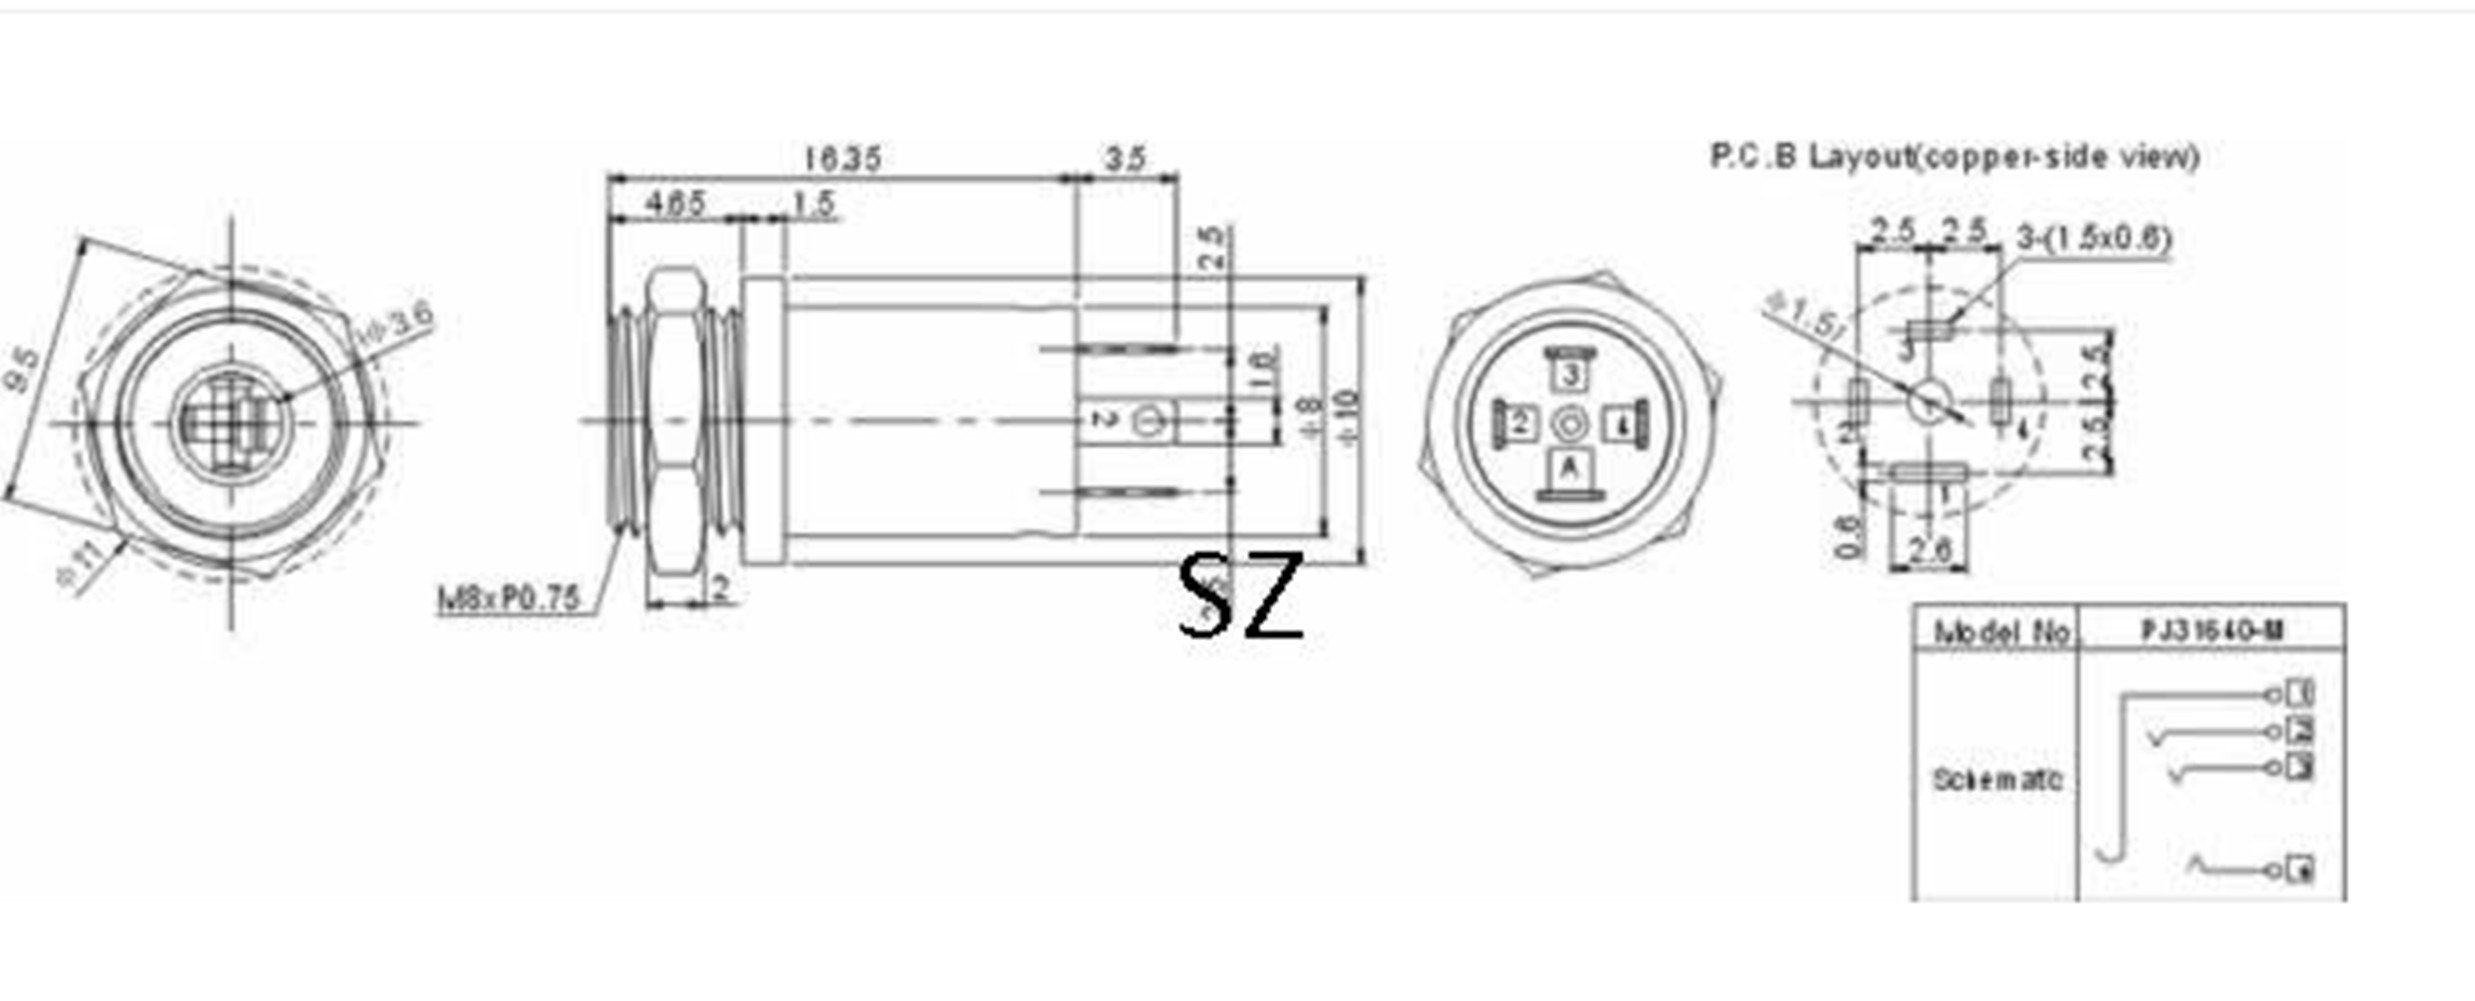 Mini Stereo Jack Wiring Electrical Diagrams Female 3 5mm Panel Mount Solder Connector Plug Diagram